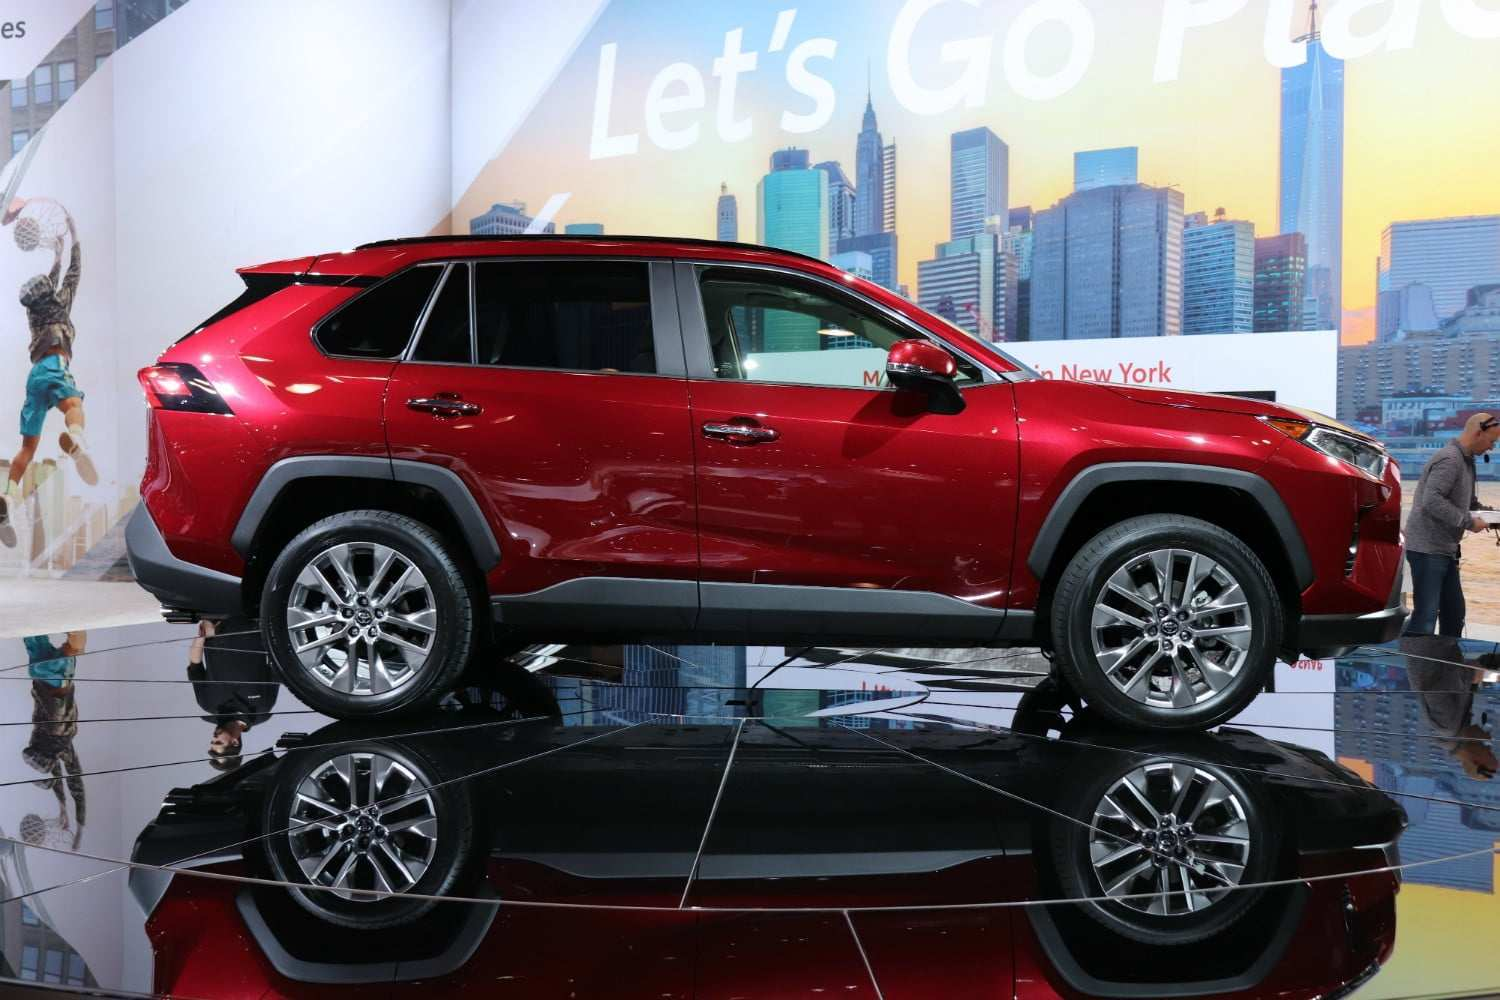 37 New 2019 Toyota Rav4 Specs Picture Release Date And Review First Drive by 2019 Toyota Rav4 Specs Picture Release Date And Review